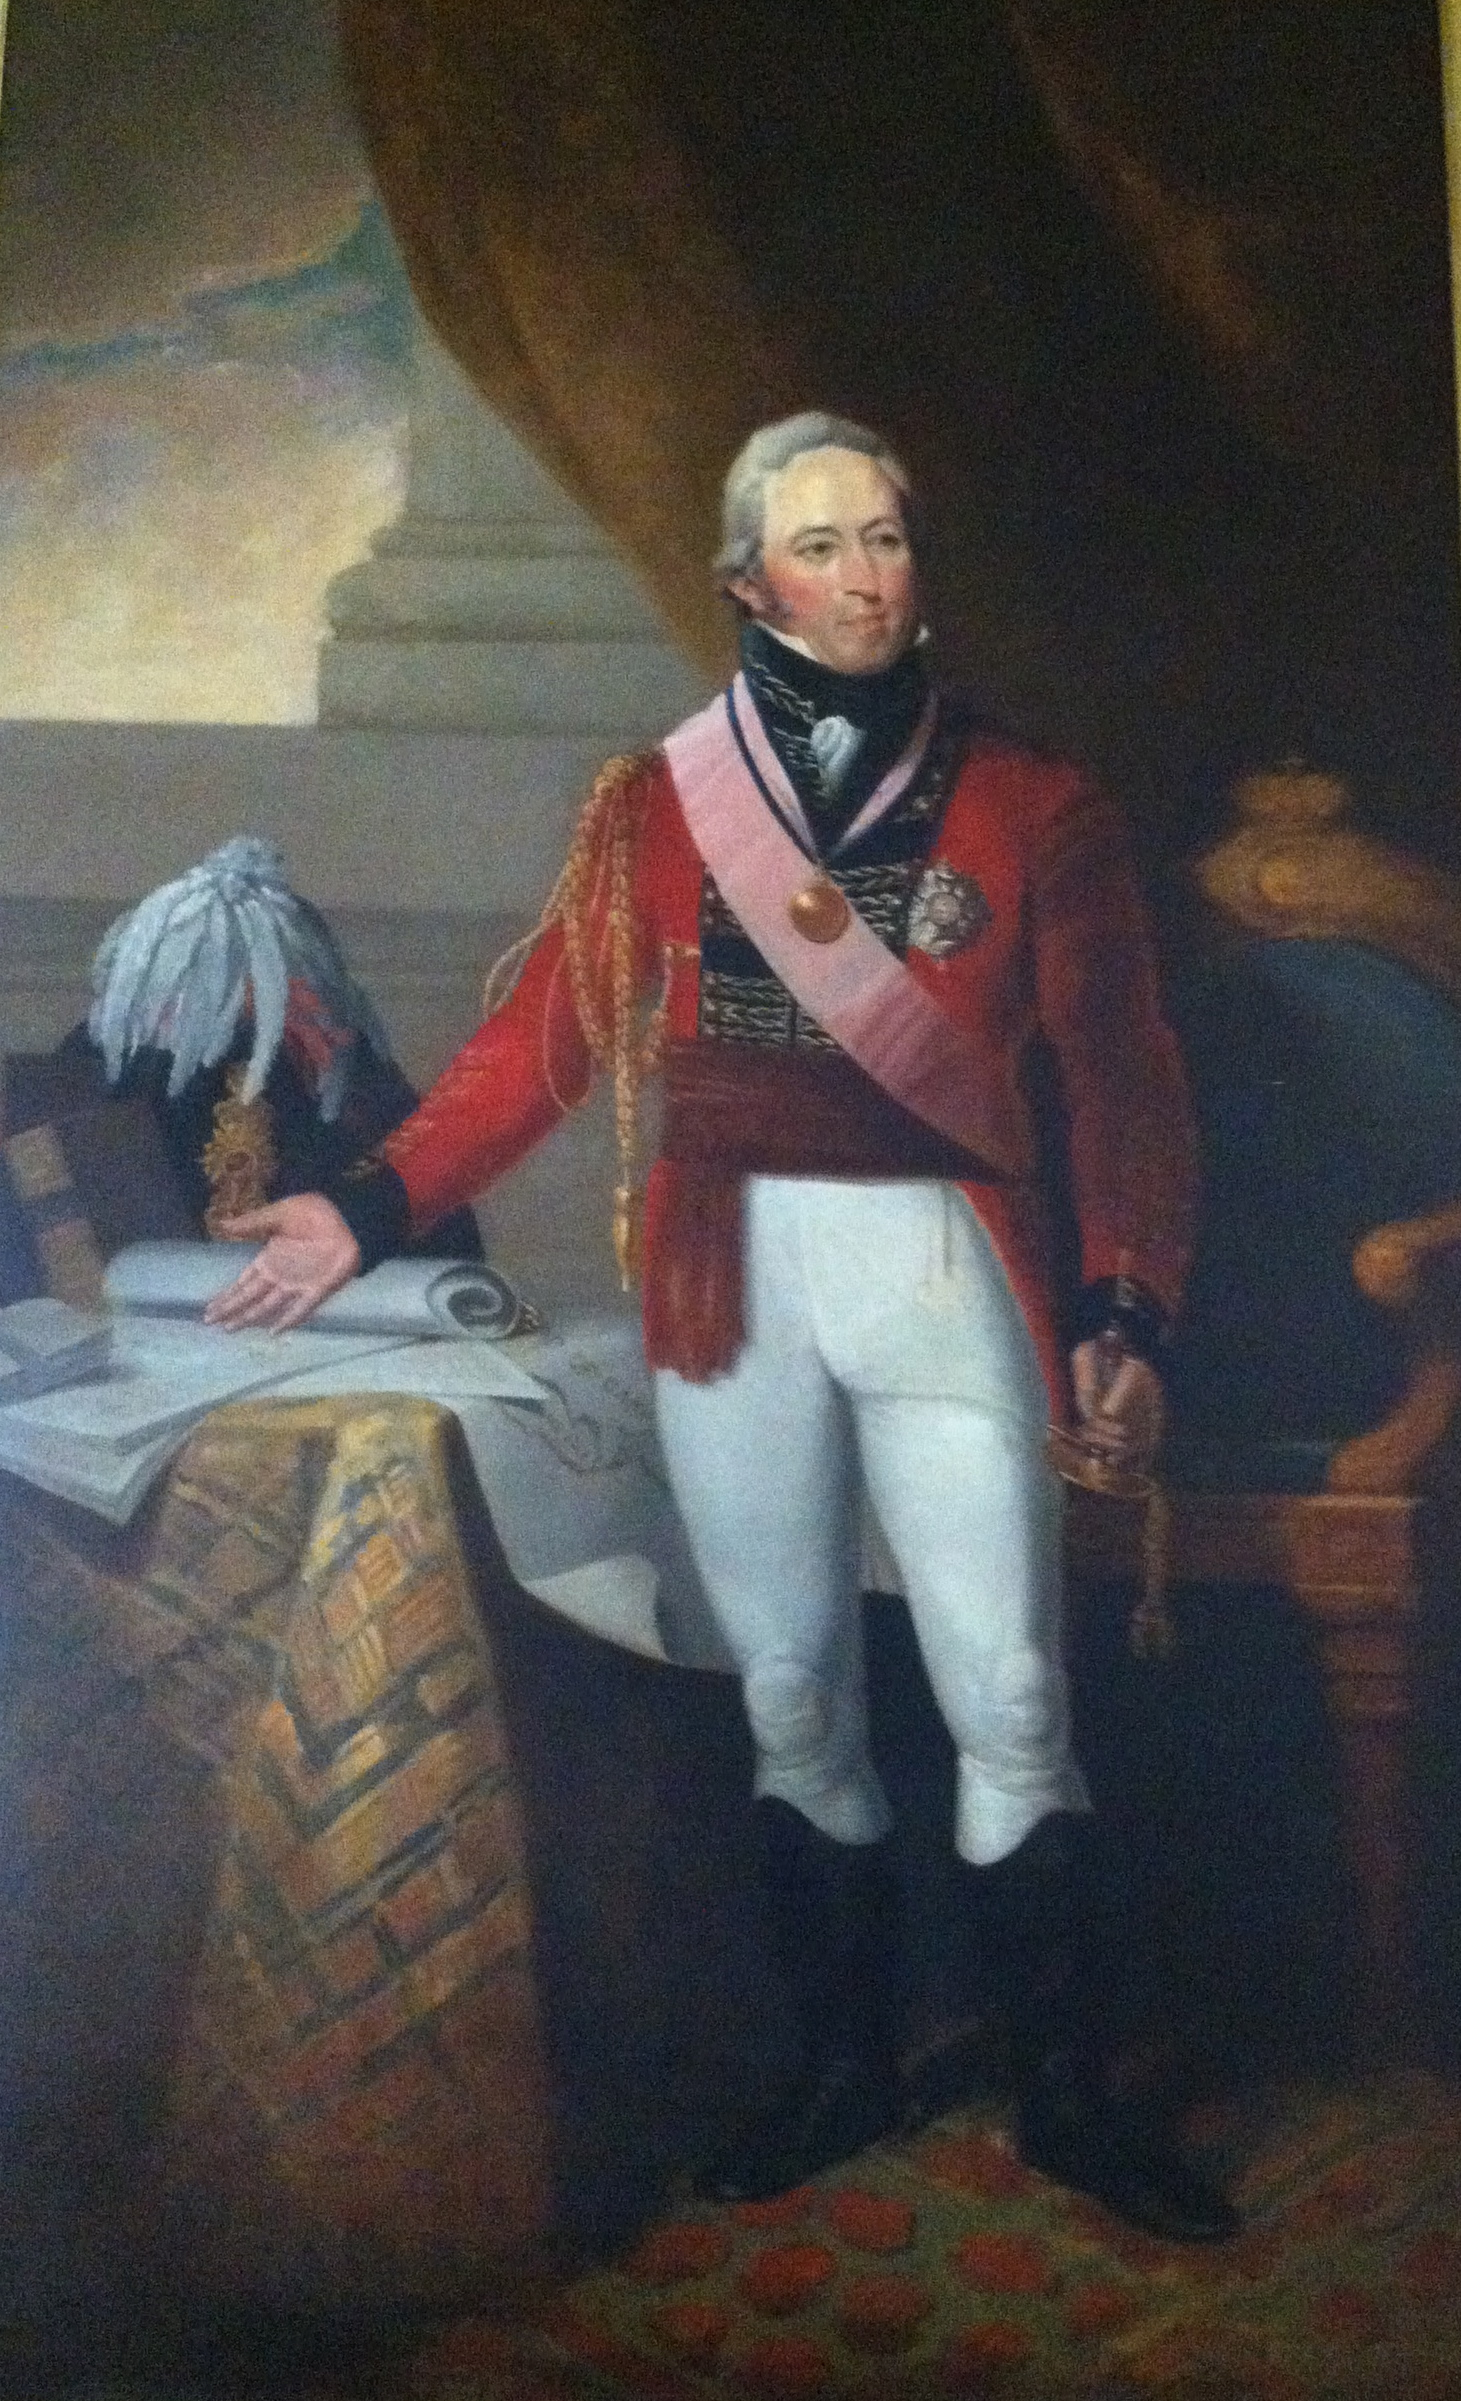 Sir John Sherbrooke: inspiration for the unconquerable Canadian Fort Sherbrooke. Founder of Dalhousie University in Halifax with the tariffs collected by the fort.